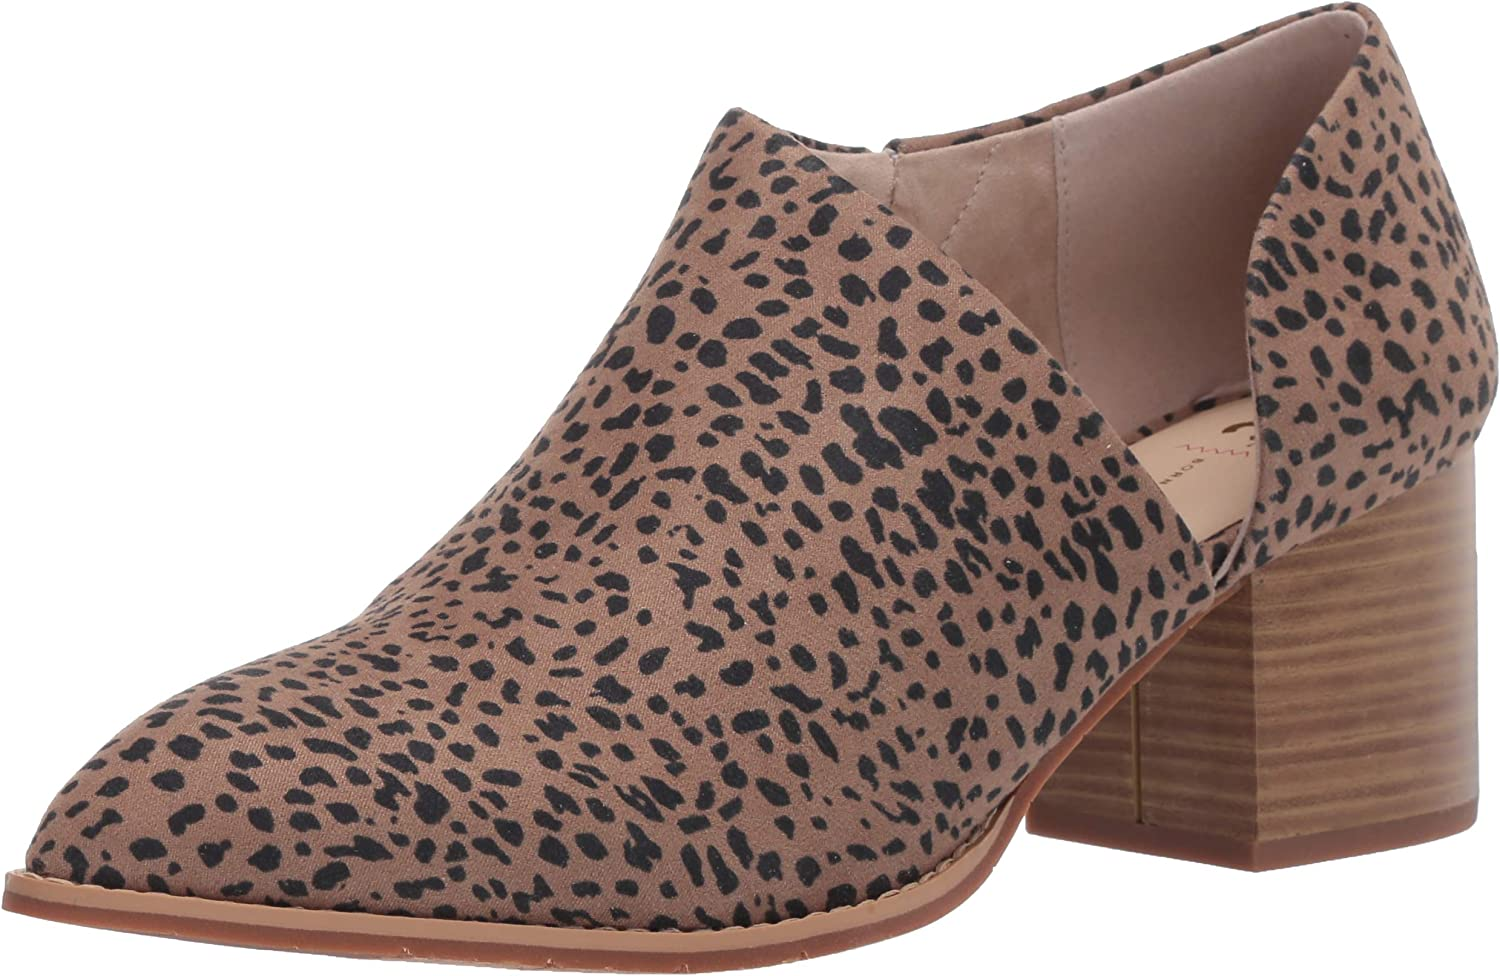 BC Footwear Women's 2021 Make mart Ankle Boot a Difference